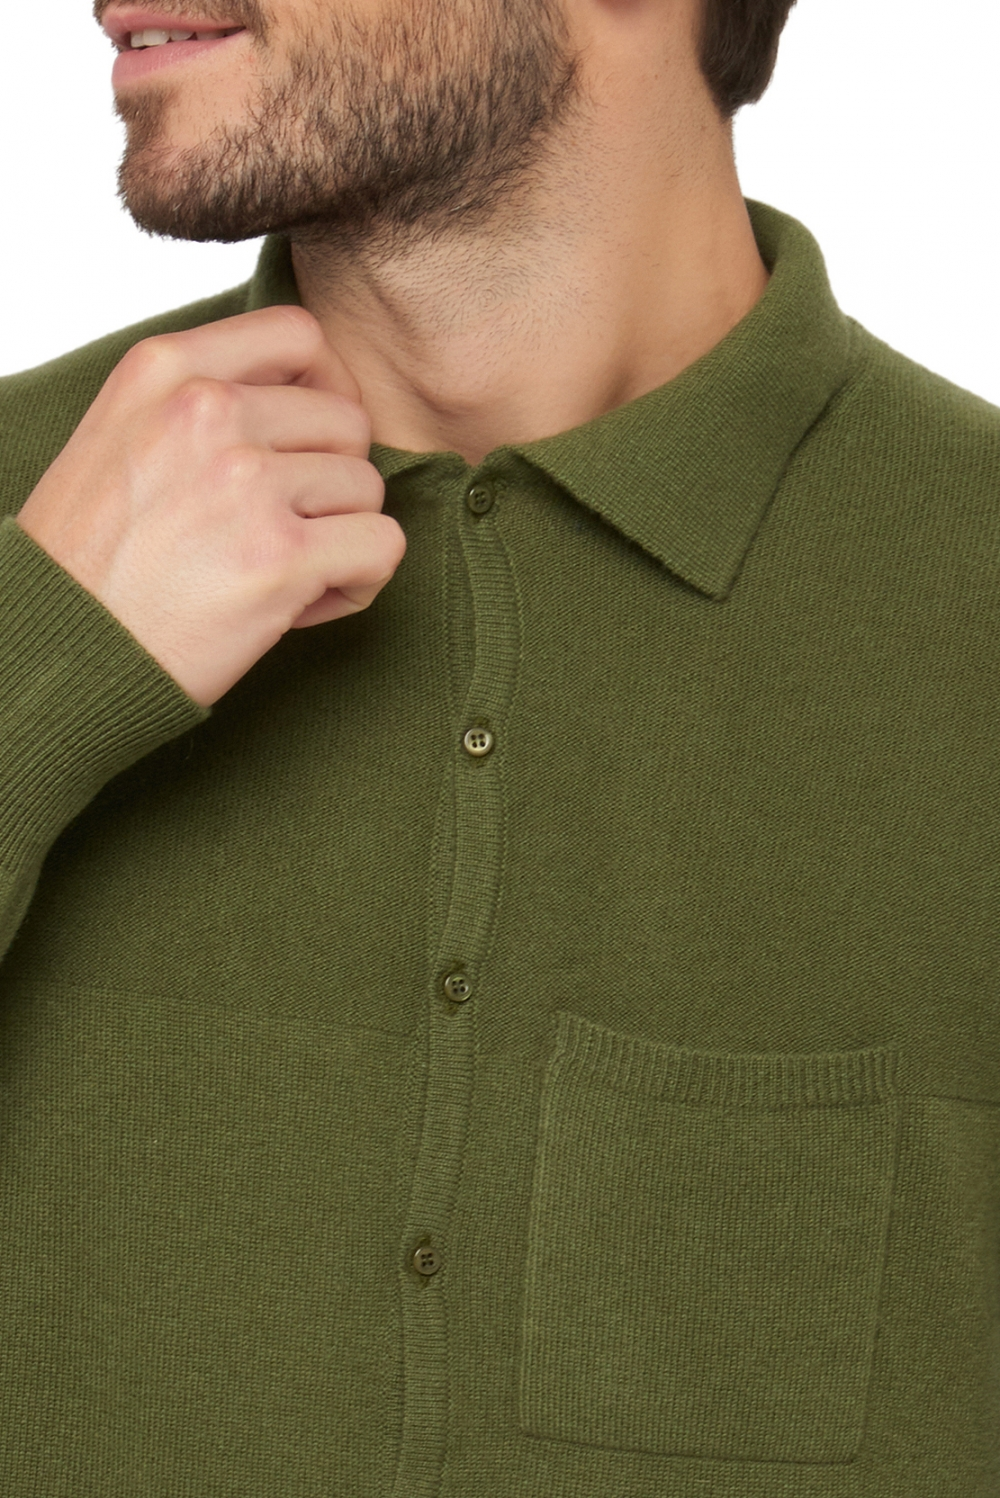 Cashmere men polo style sweaters aureo ivy green l